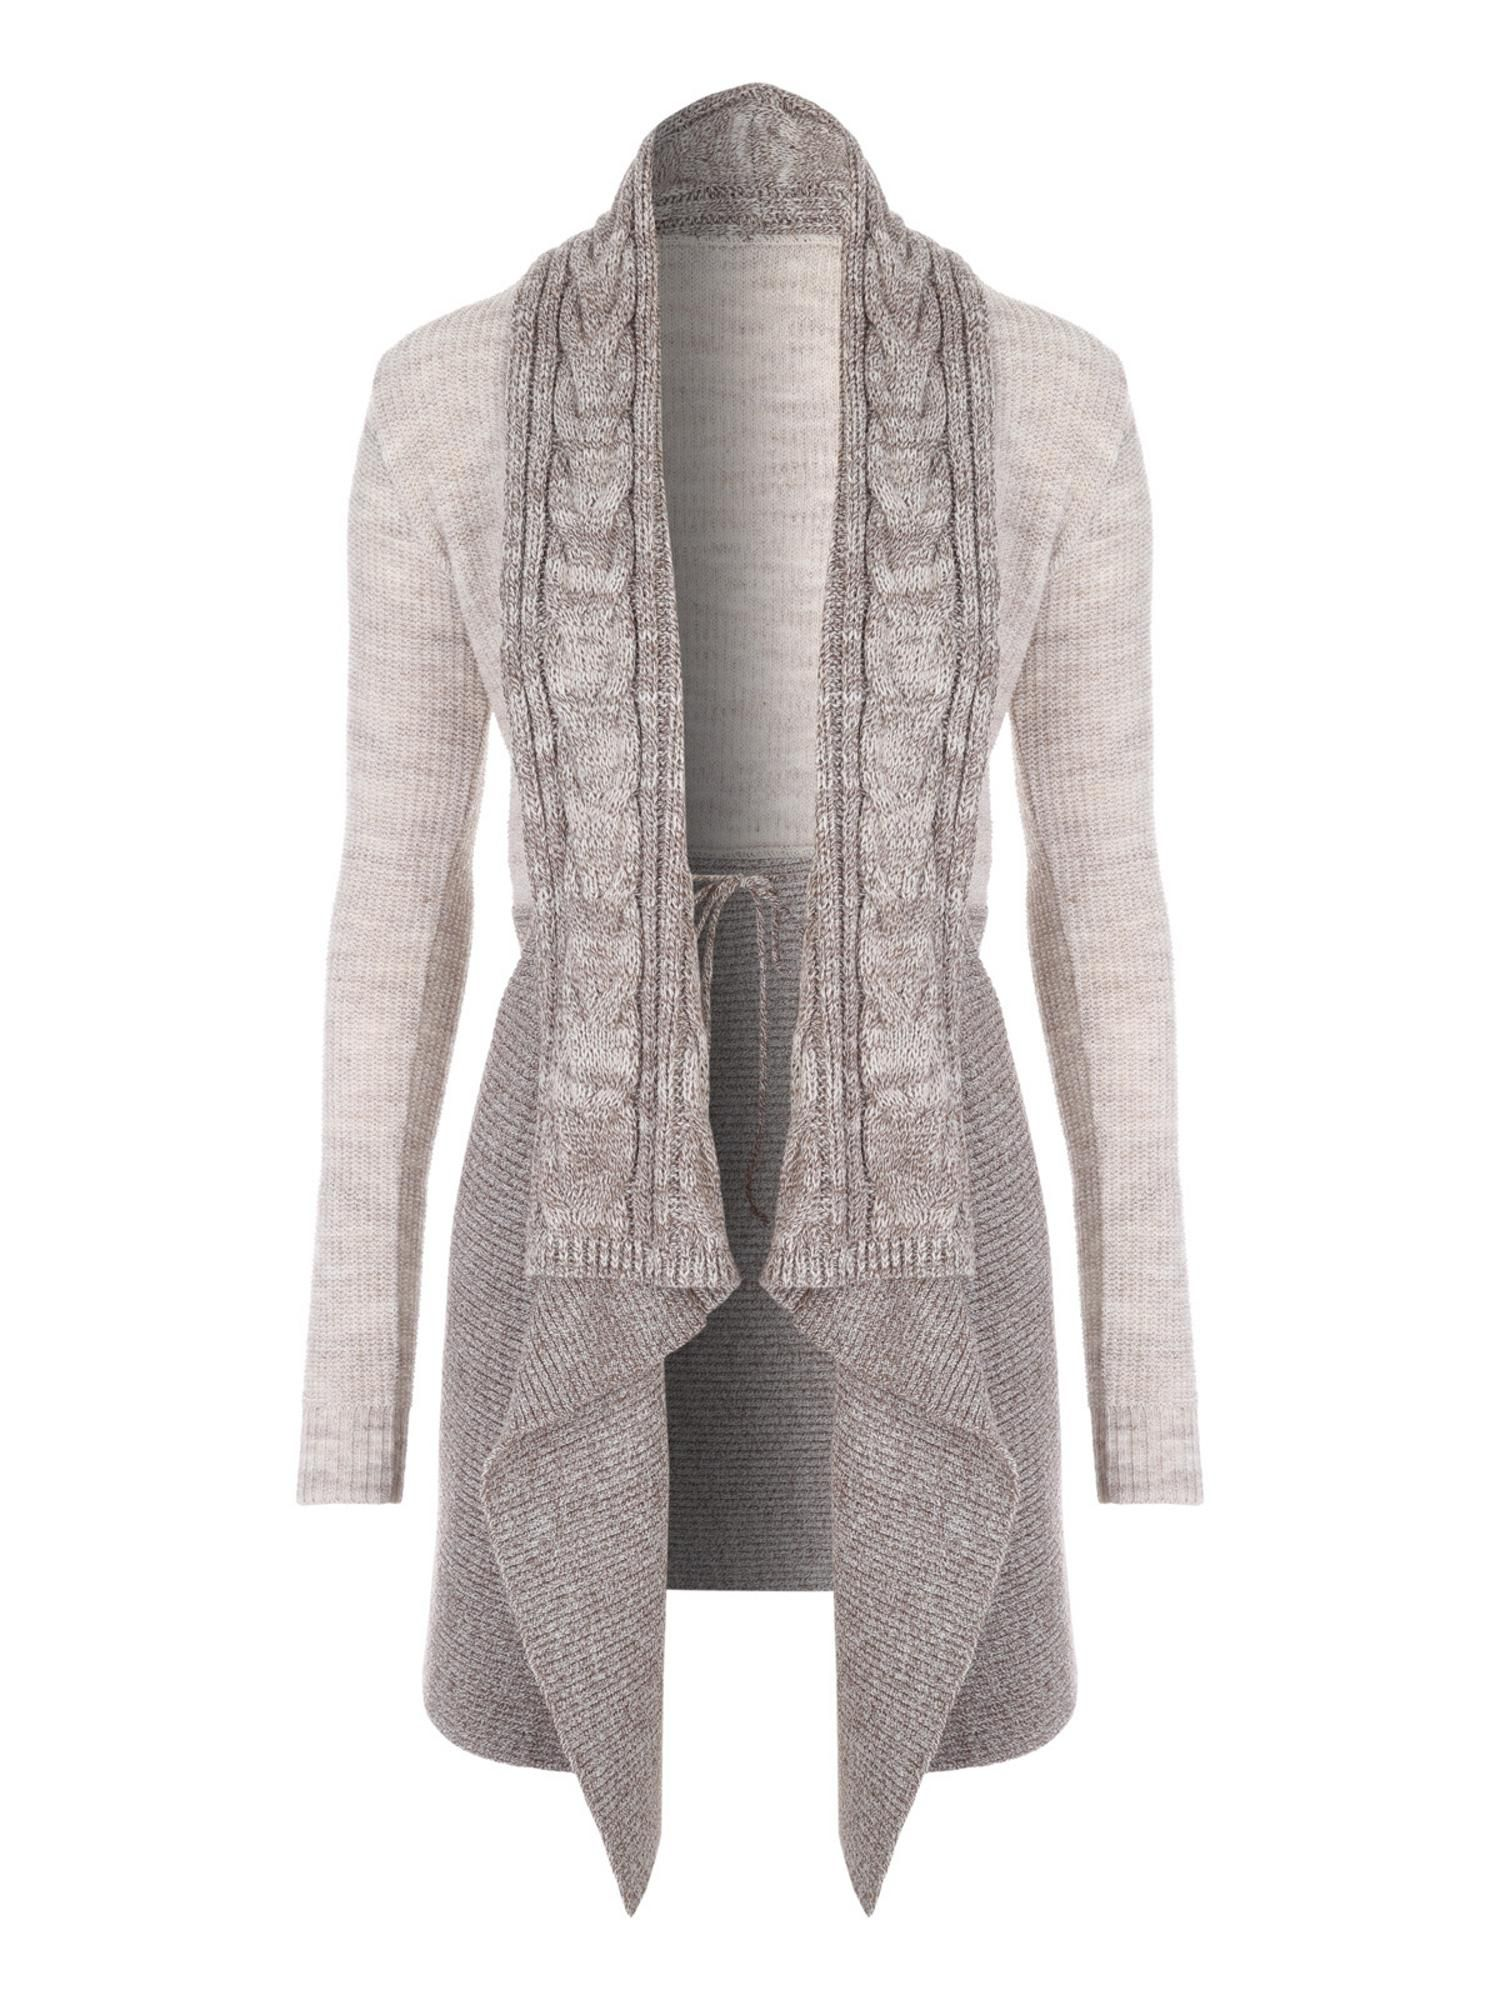 6a4de3e5 Buy your Jane Norman Two-tone Waterfall Cardigan online now at House of  Fraser.